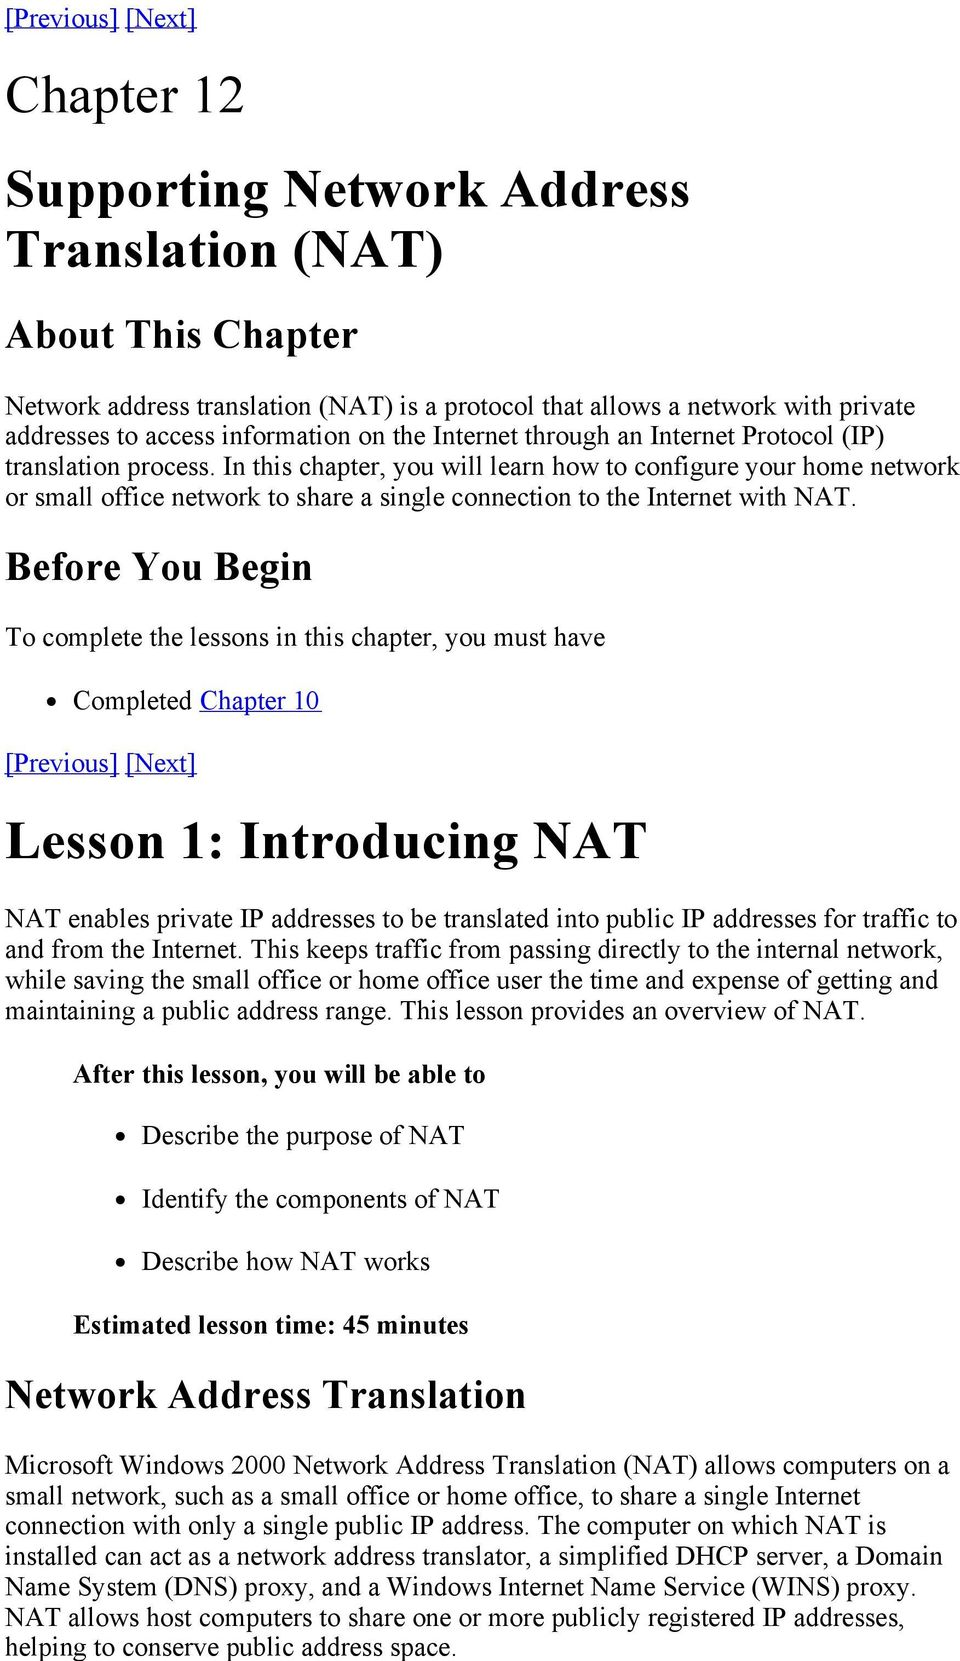 In this chapter, you will learn how to configure your home network or small office network to share a single connection to the Internet with NAT.